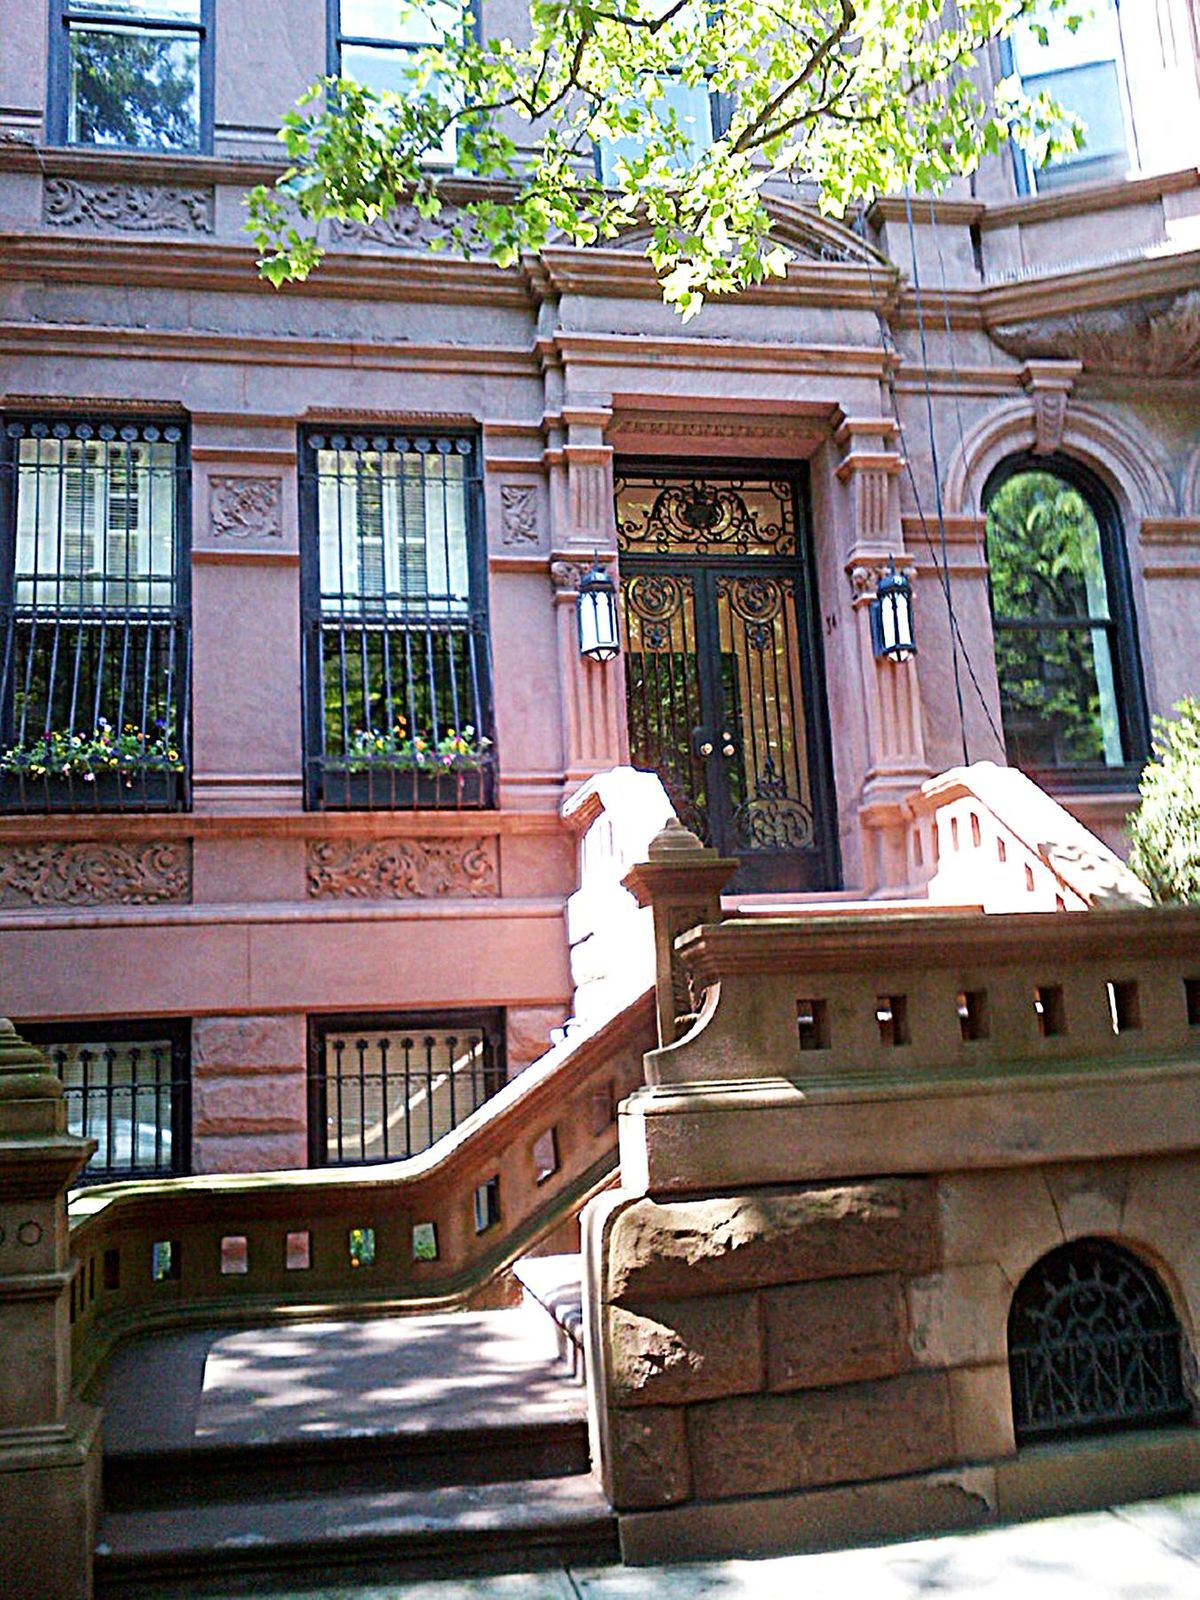 34 West 87th Street, 3F, New York NY Townhouse - New York City Real Estate